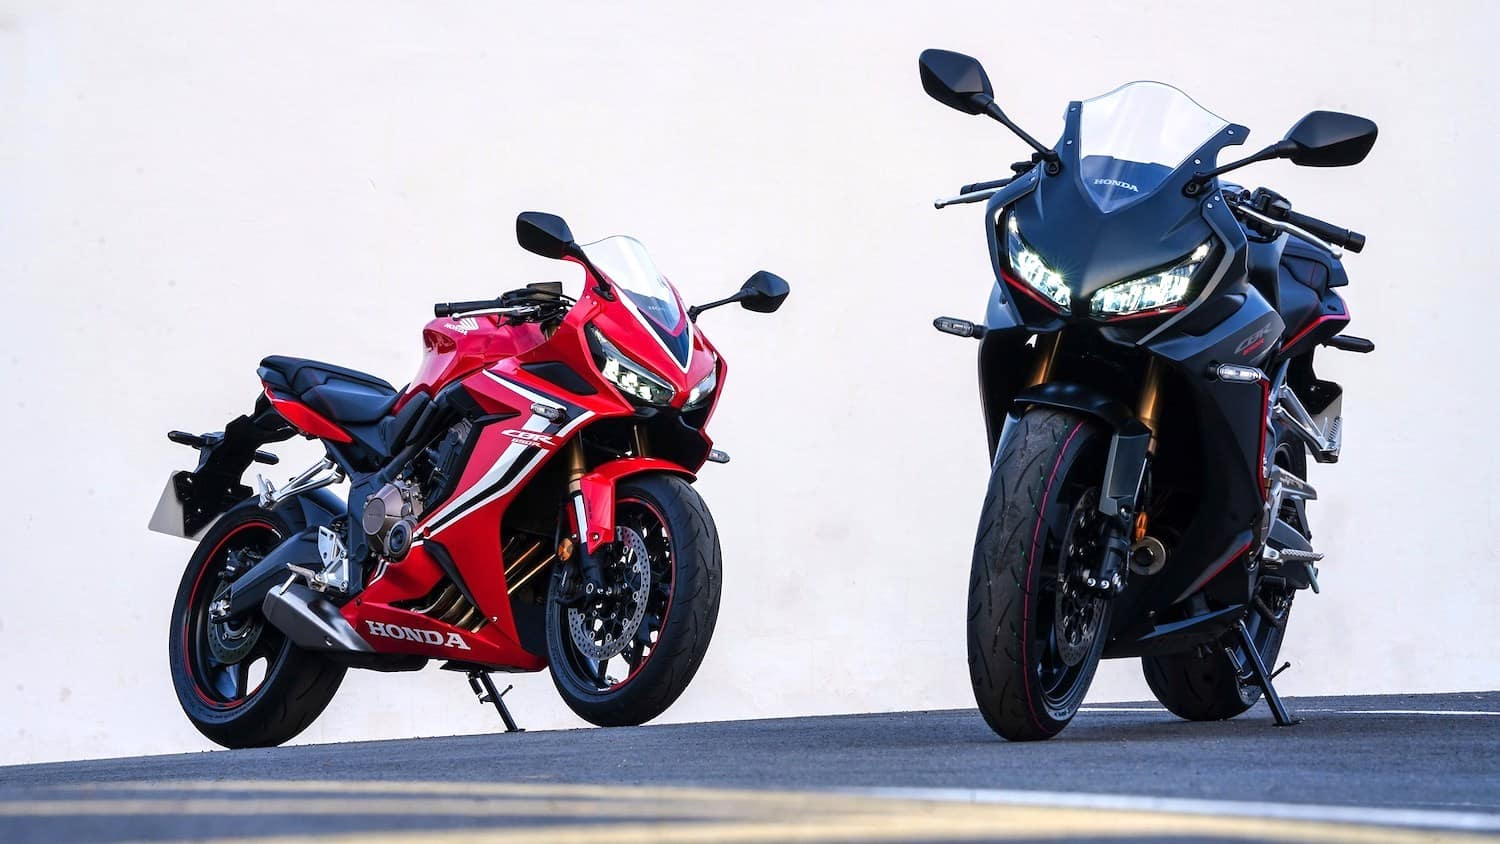 Honda CBR650R, Red and black models